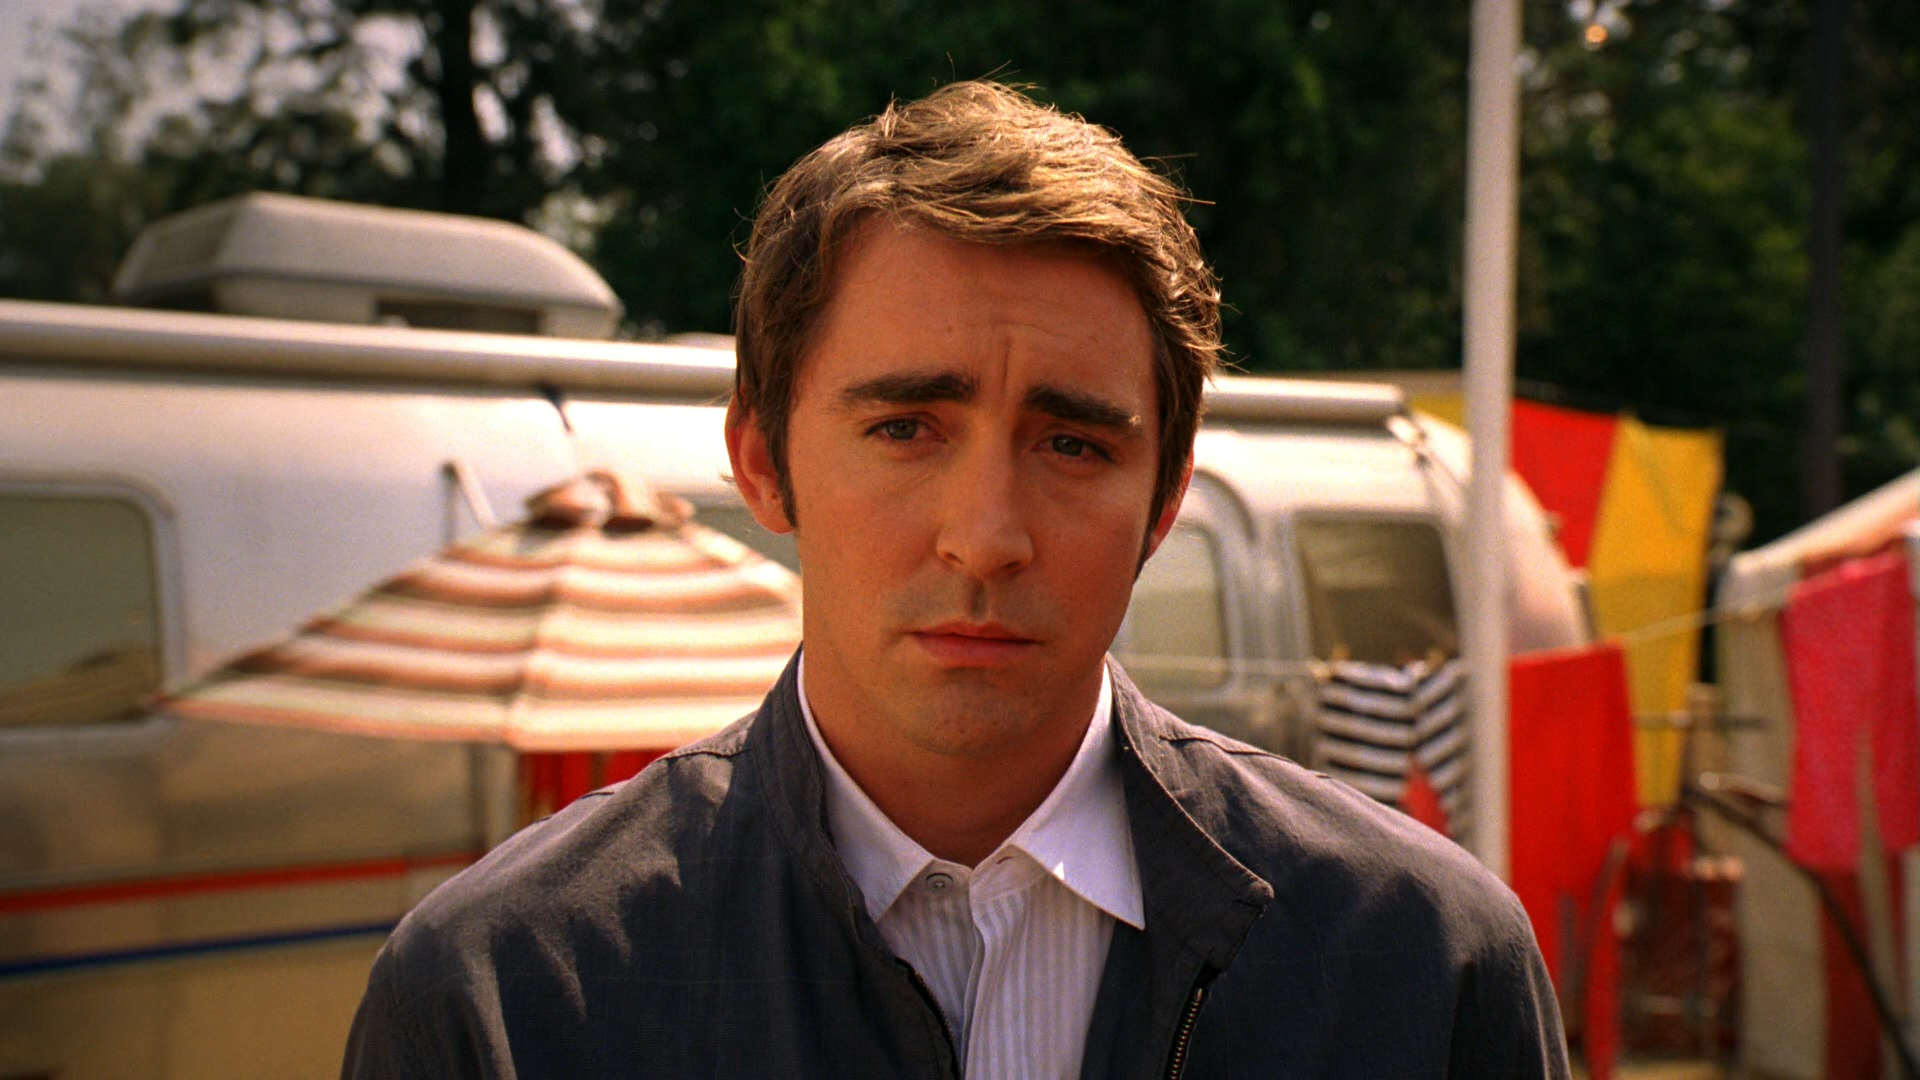 1920x1080 - Lee Pace Wallpapers 17